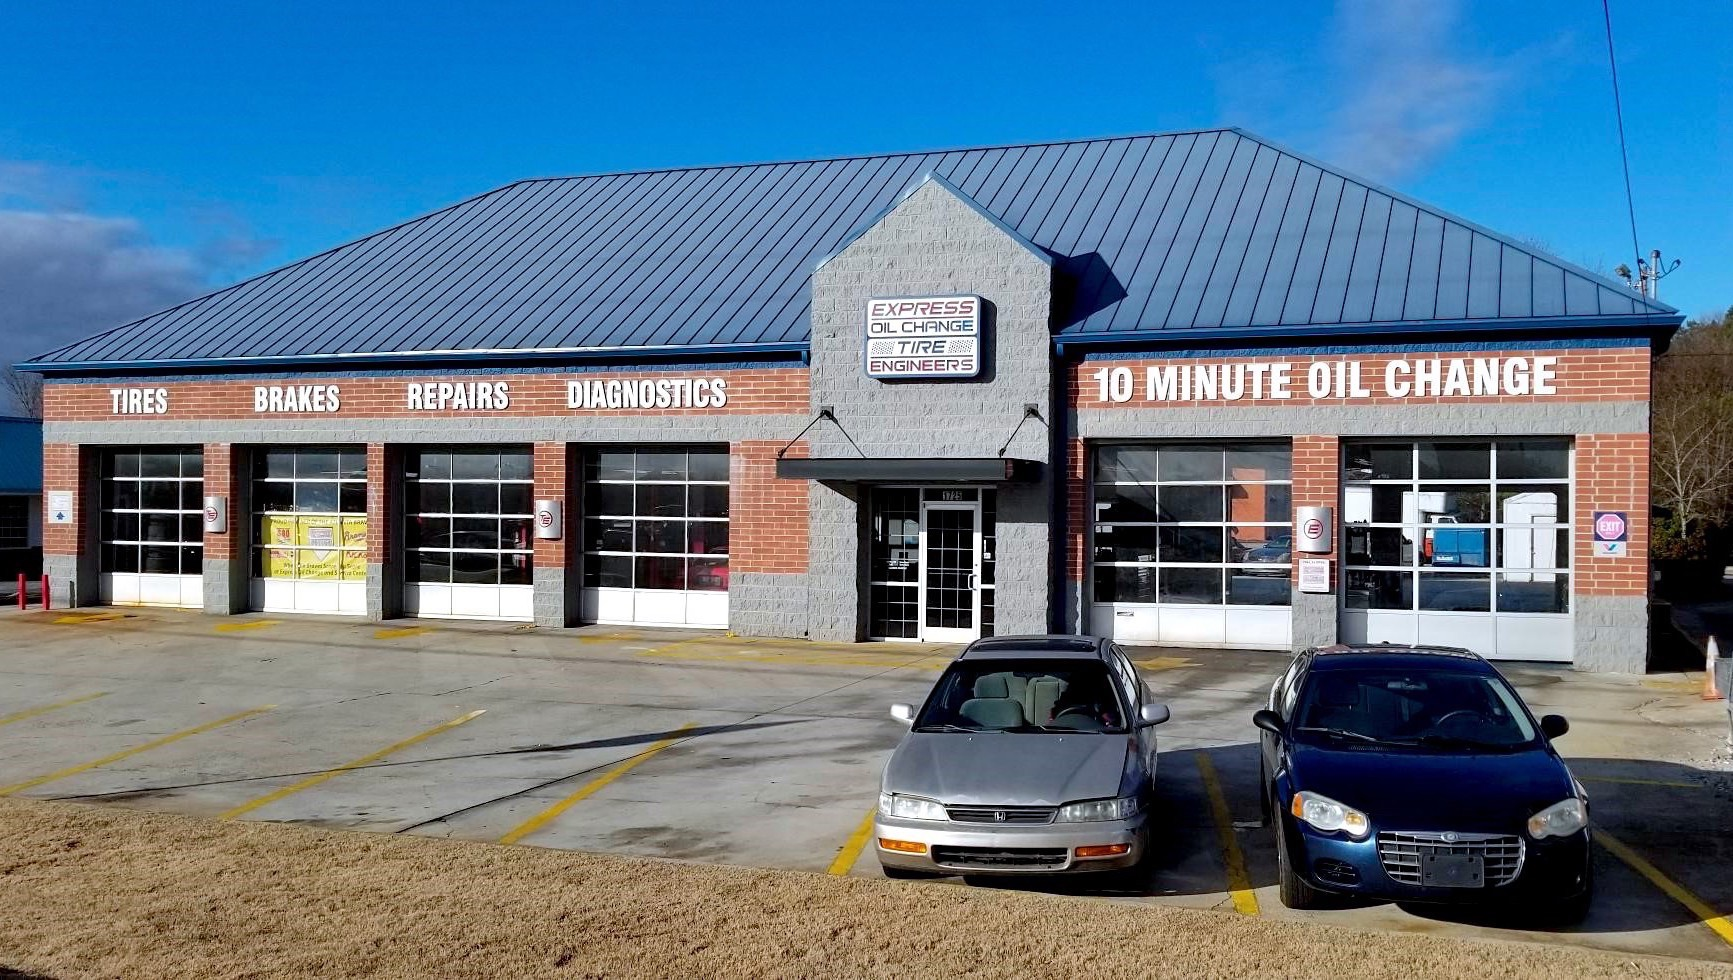 Express Oil Change & Tire Engineers Conyers, GA store